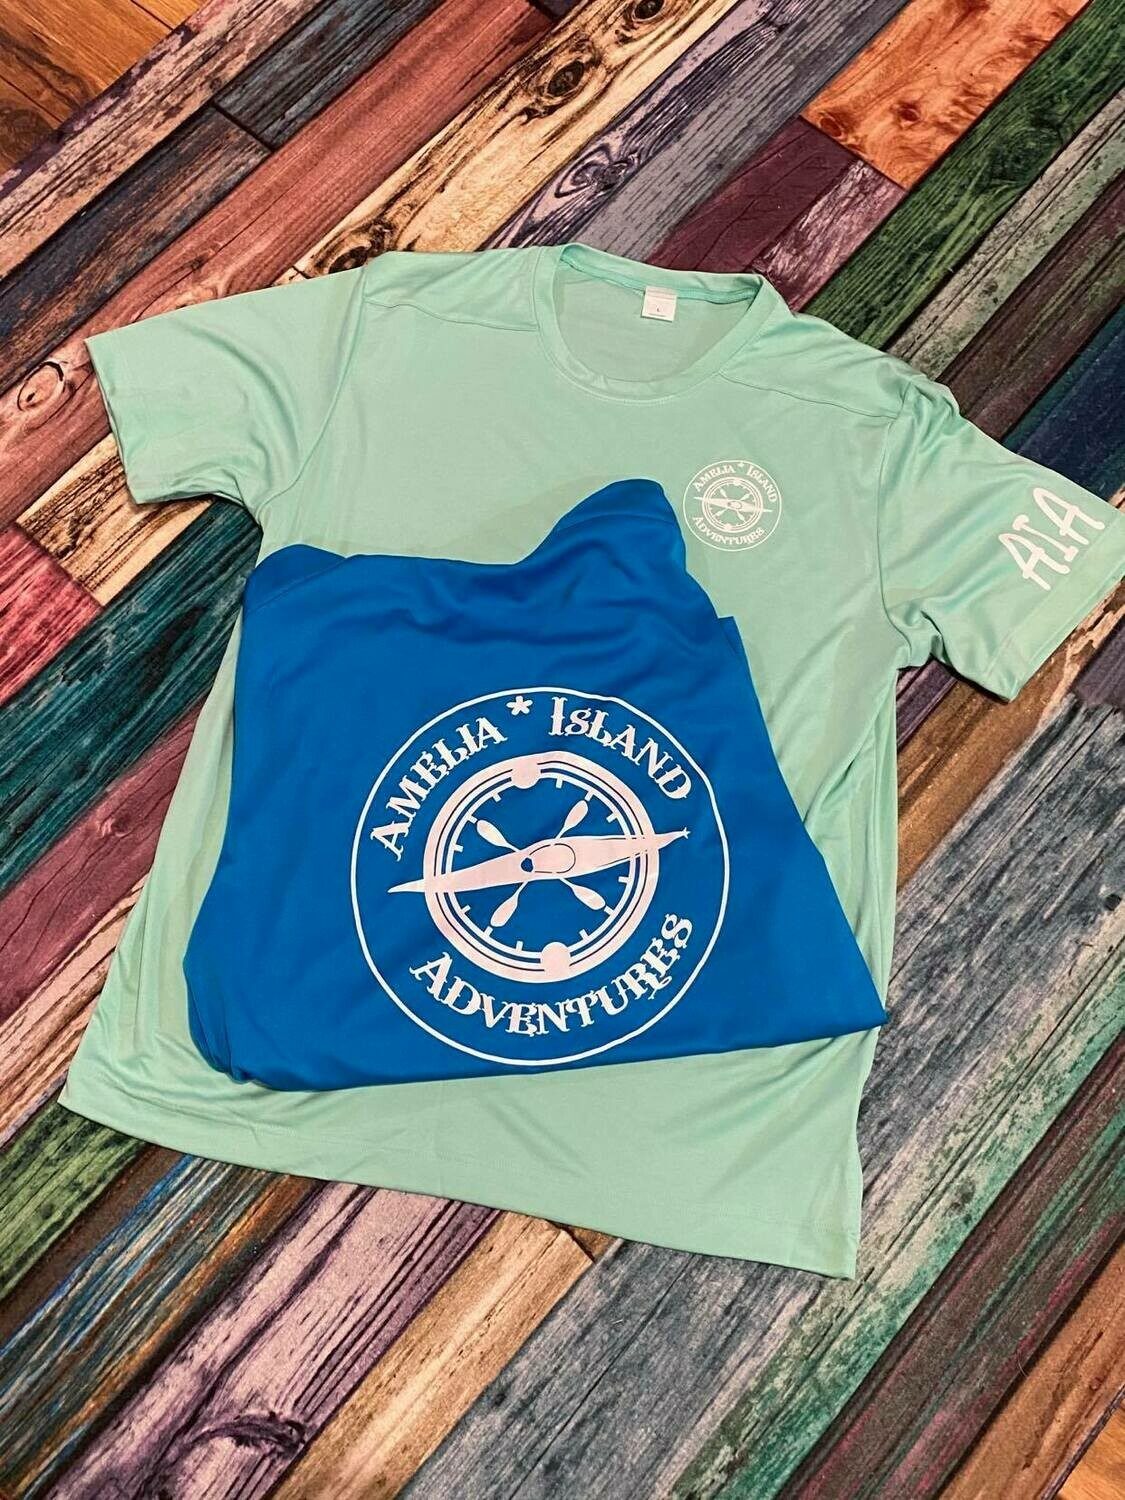 Amelia Island Adventures UV Performance Shirt